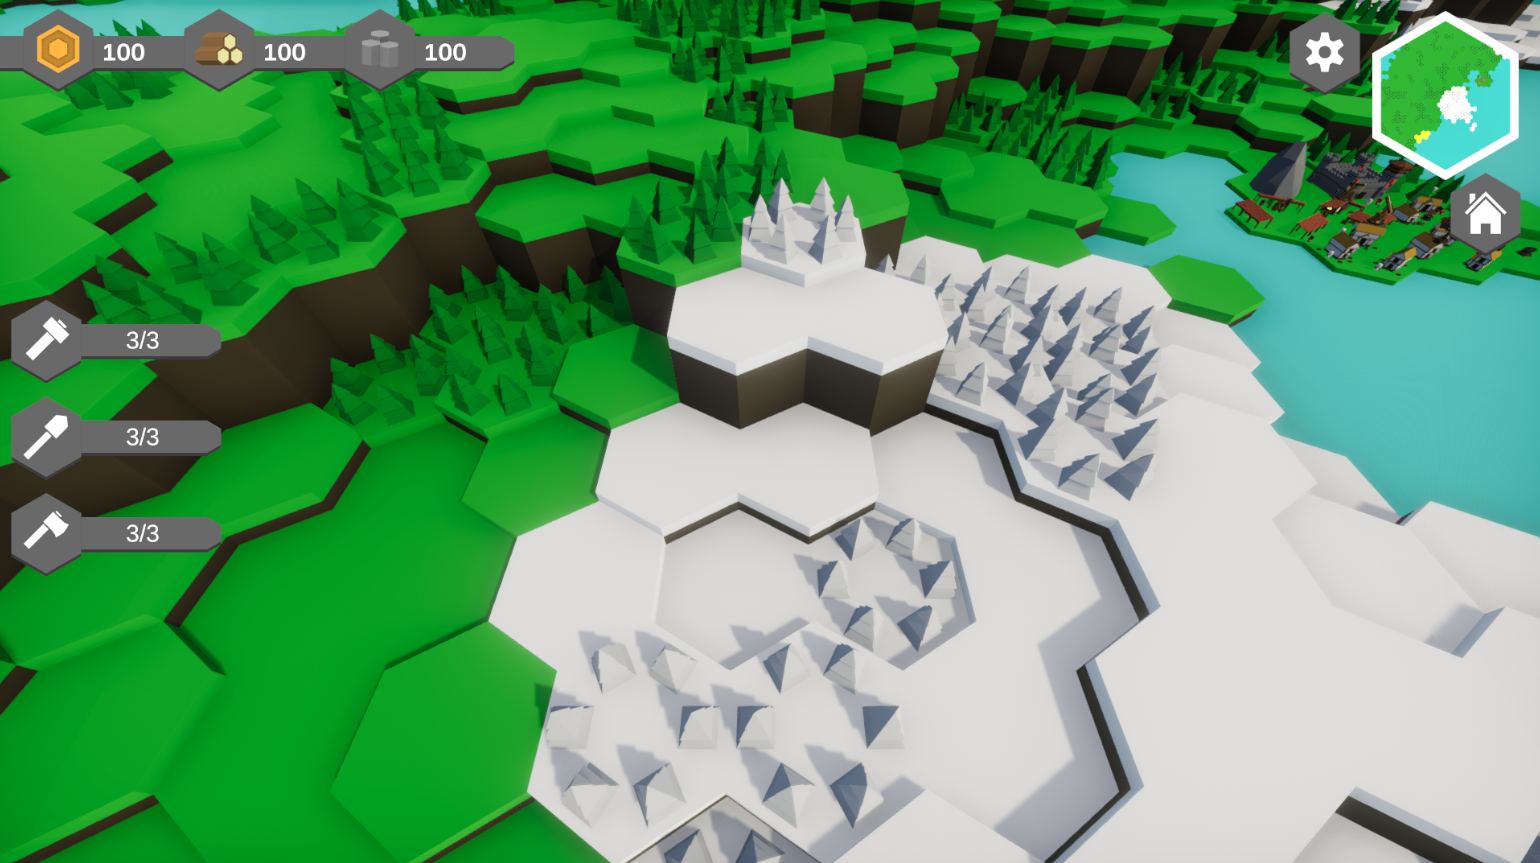 Hexagon game in the making